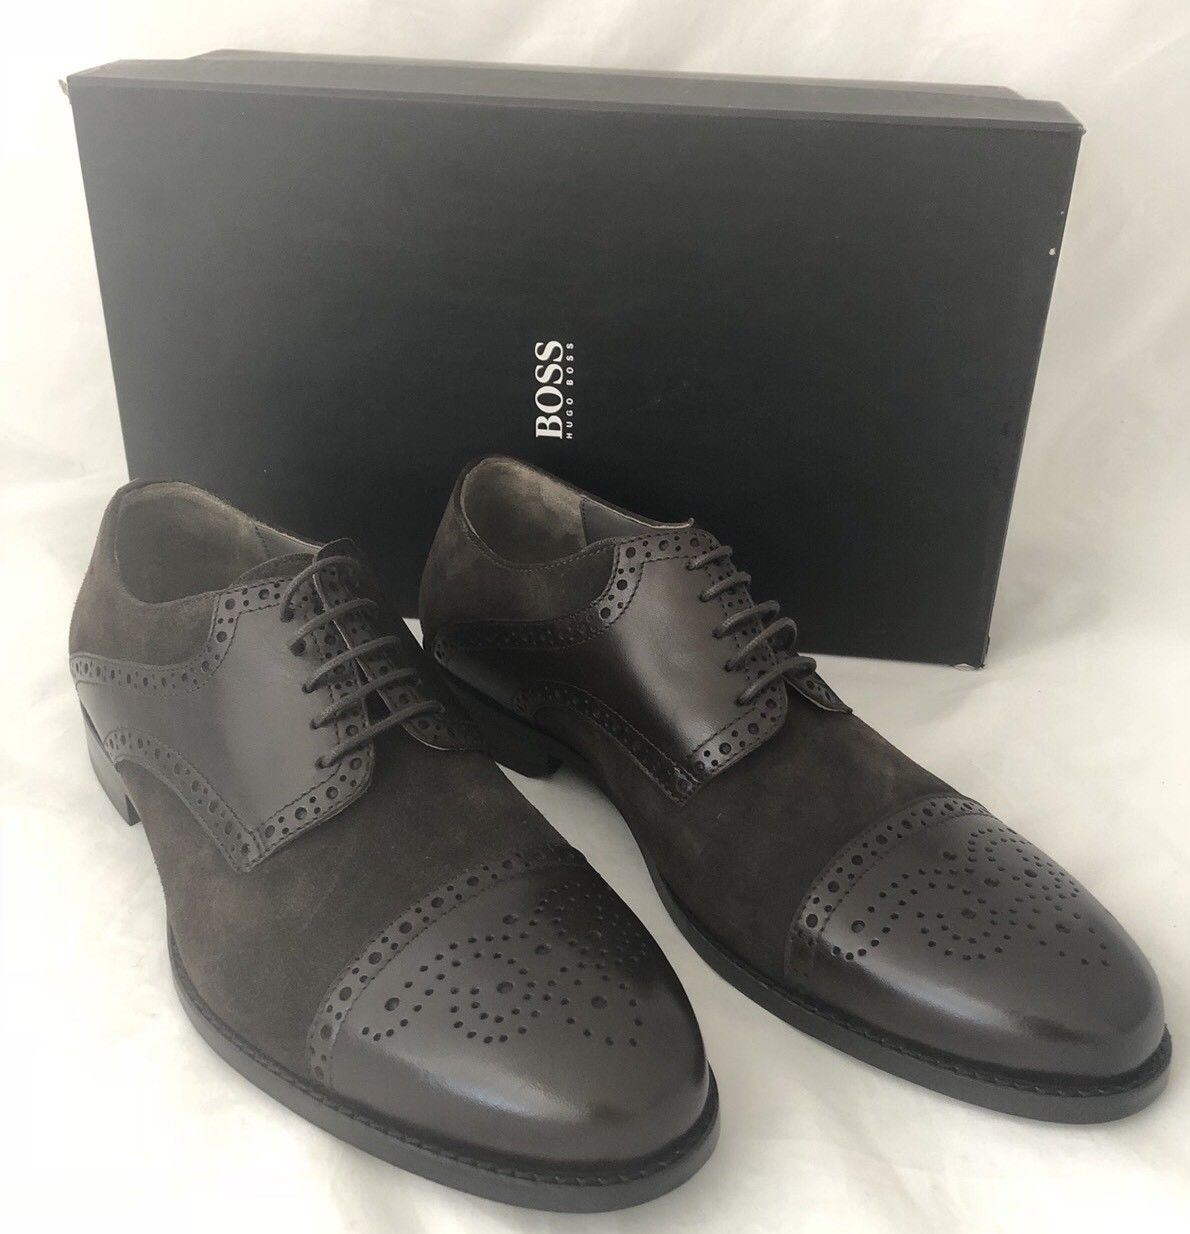 NIB $245 Boss Hugo Boss Suede/Leather Mens C-Gramix Shoes Brown 10.5 US 50299506 - BAYSUPERSTORE